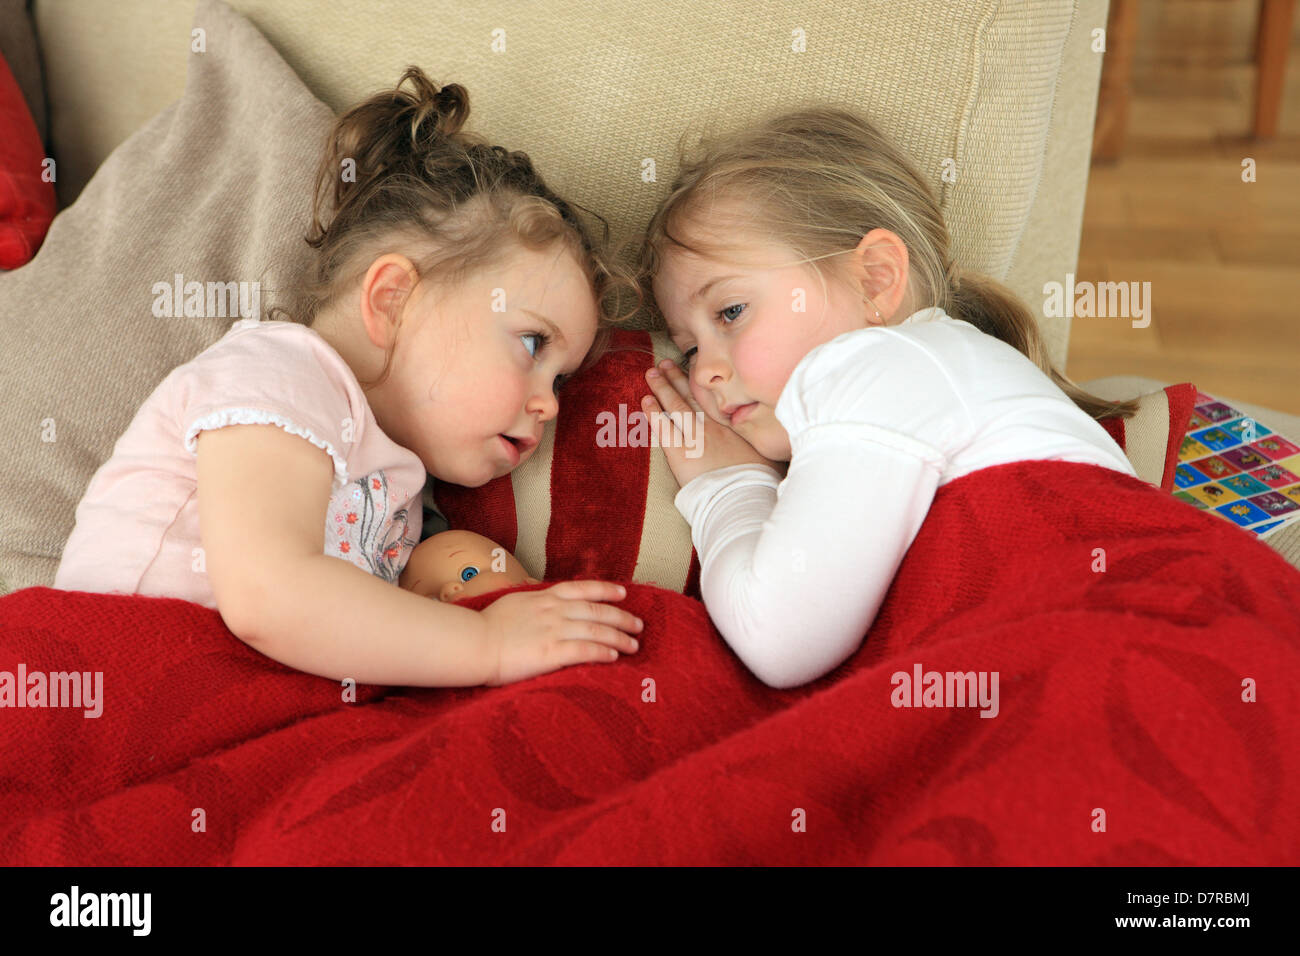 Younger sister showing concern towards her older sister who is not feeling well and is lying on the couch with a Stock Photo